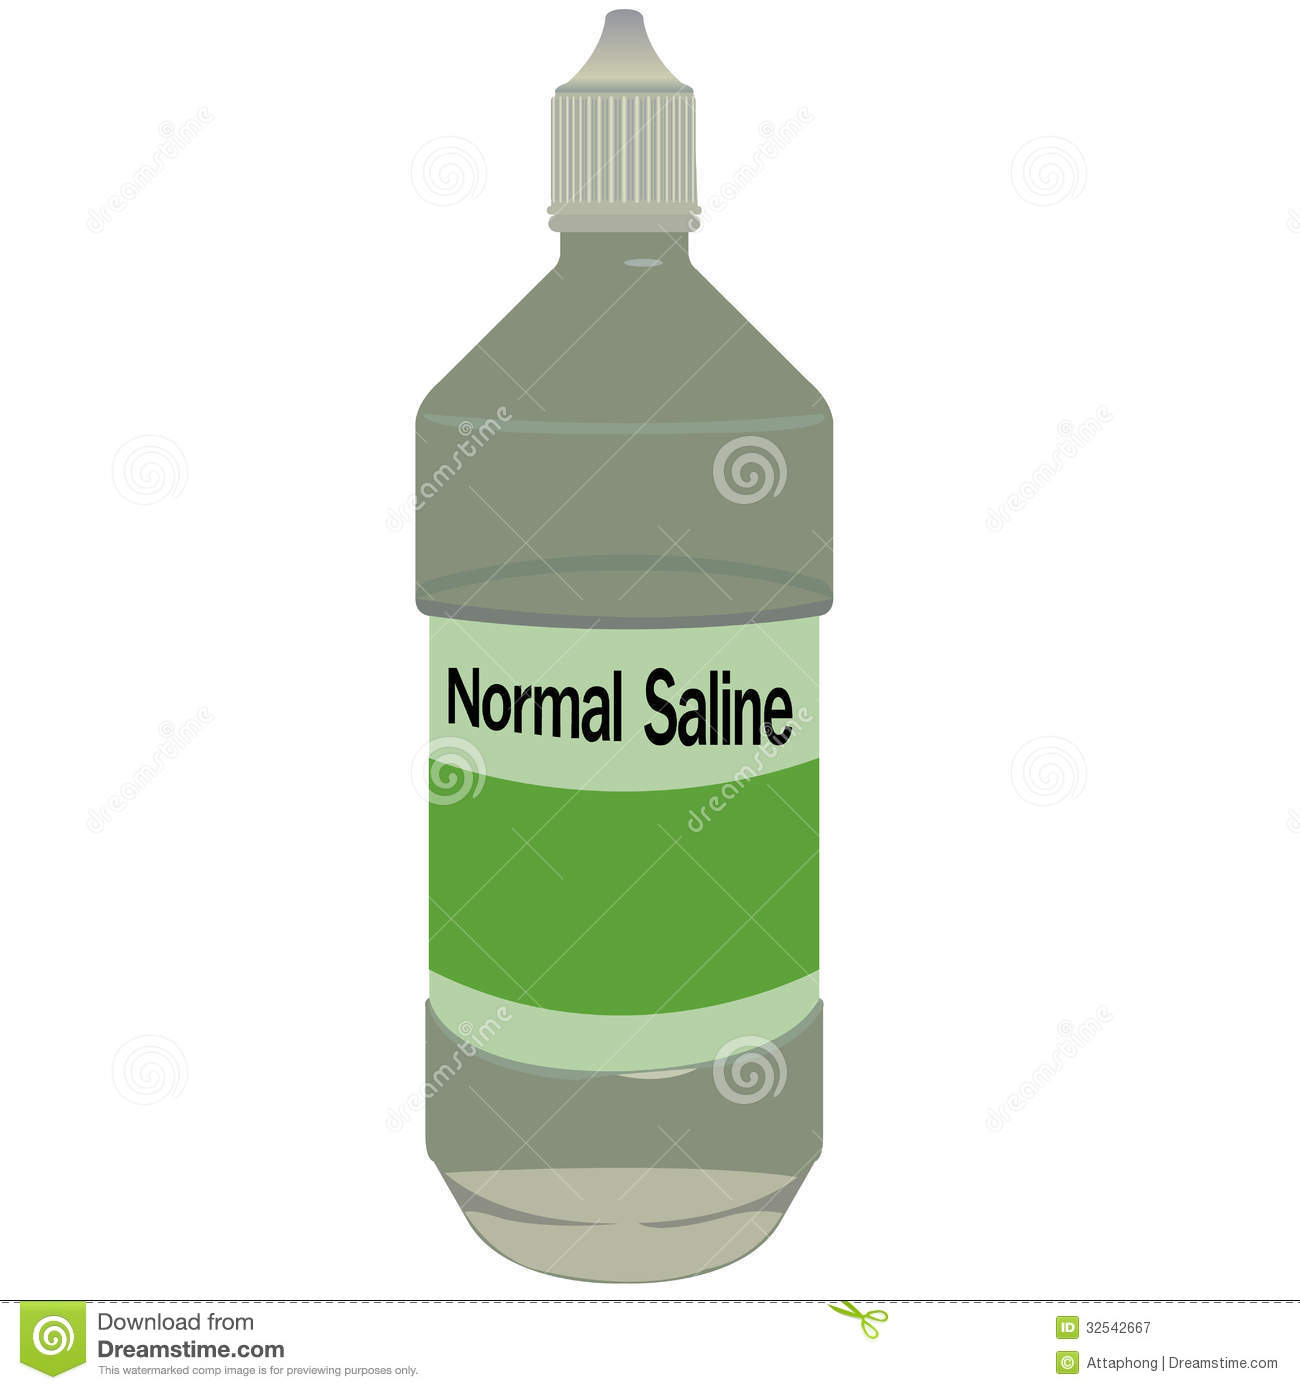 Normal Saline Bottle Vector Royalty Free Stock Photography.